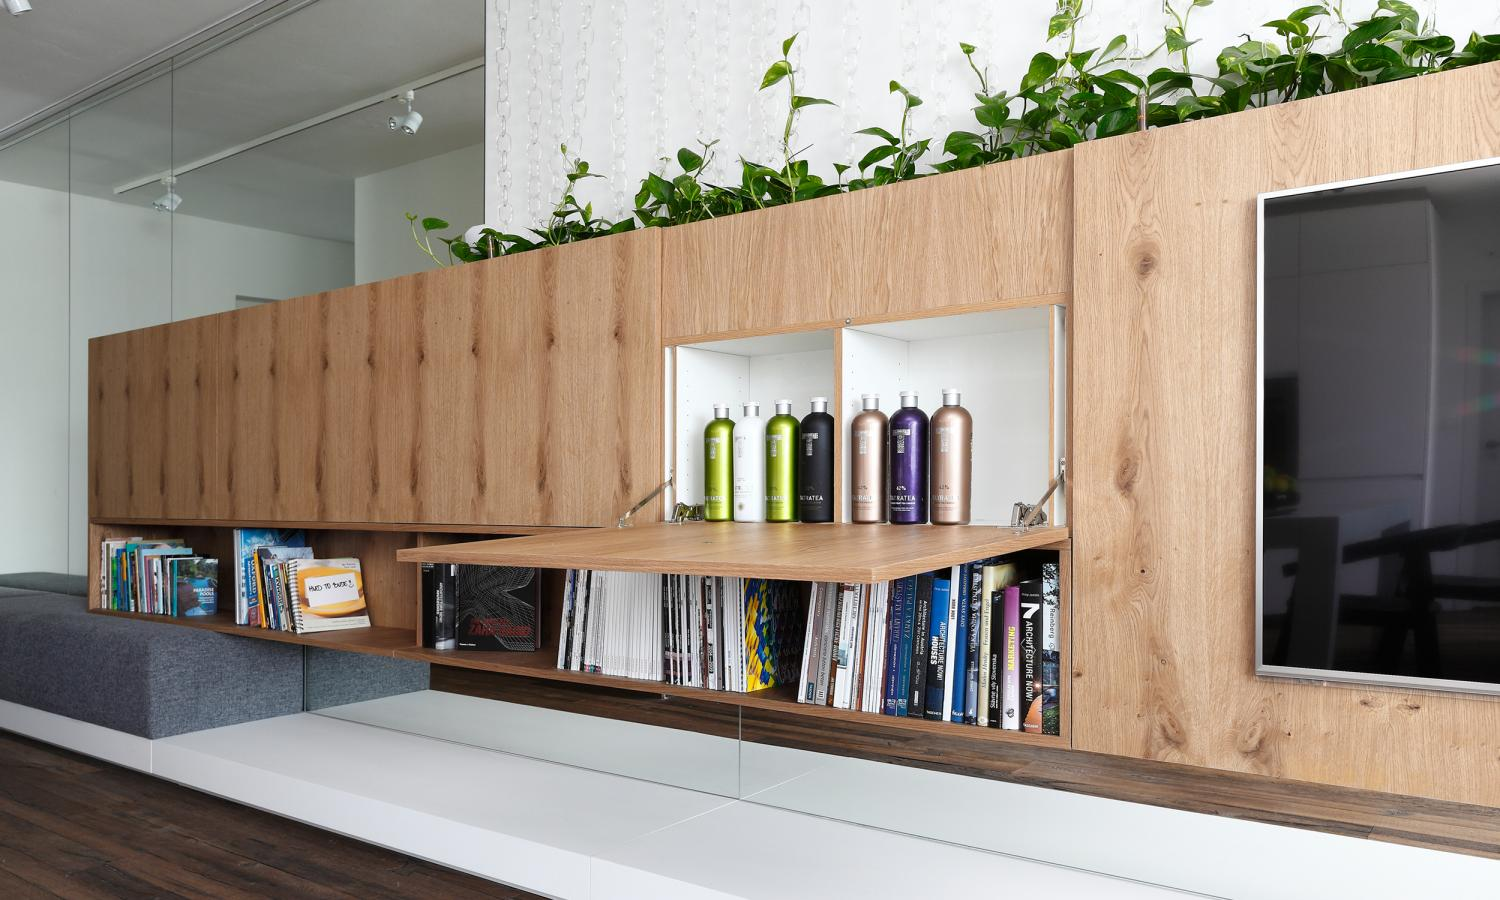 Multifunctional Cabinets Living Room Design - Indoor plant inspiration to transform your space